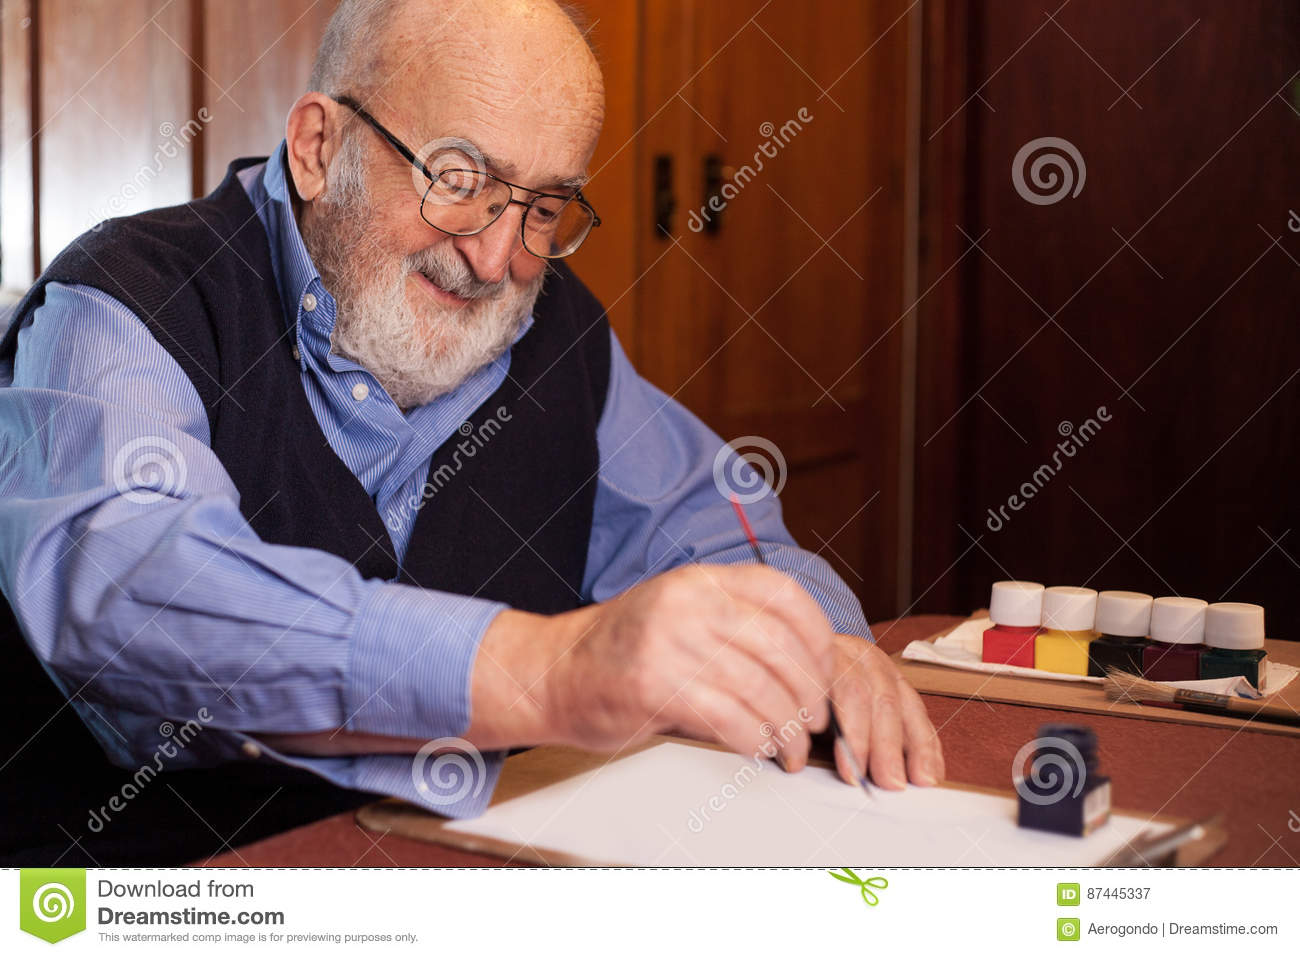 Old man writing a letter stock image. Image of blue, pensioner